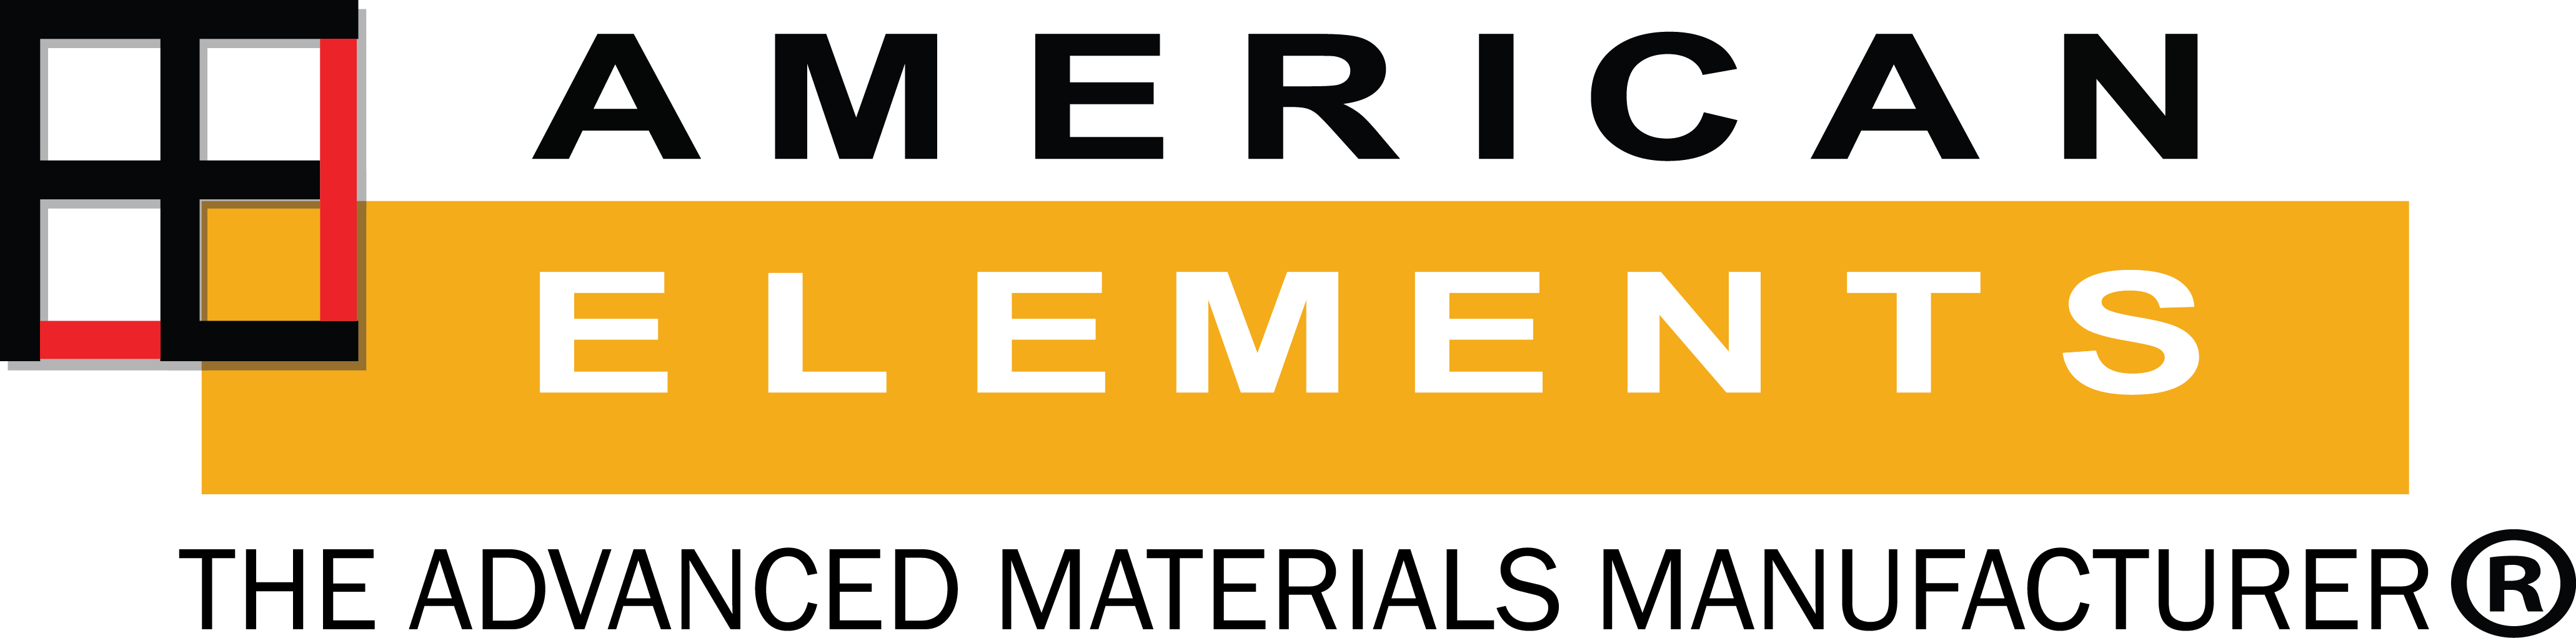 American Elements, global manufacturer of high purity NiTi, CuAlMn, & other shape memory alloys